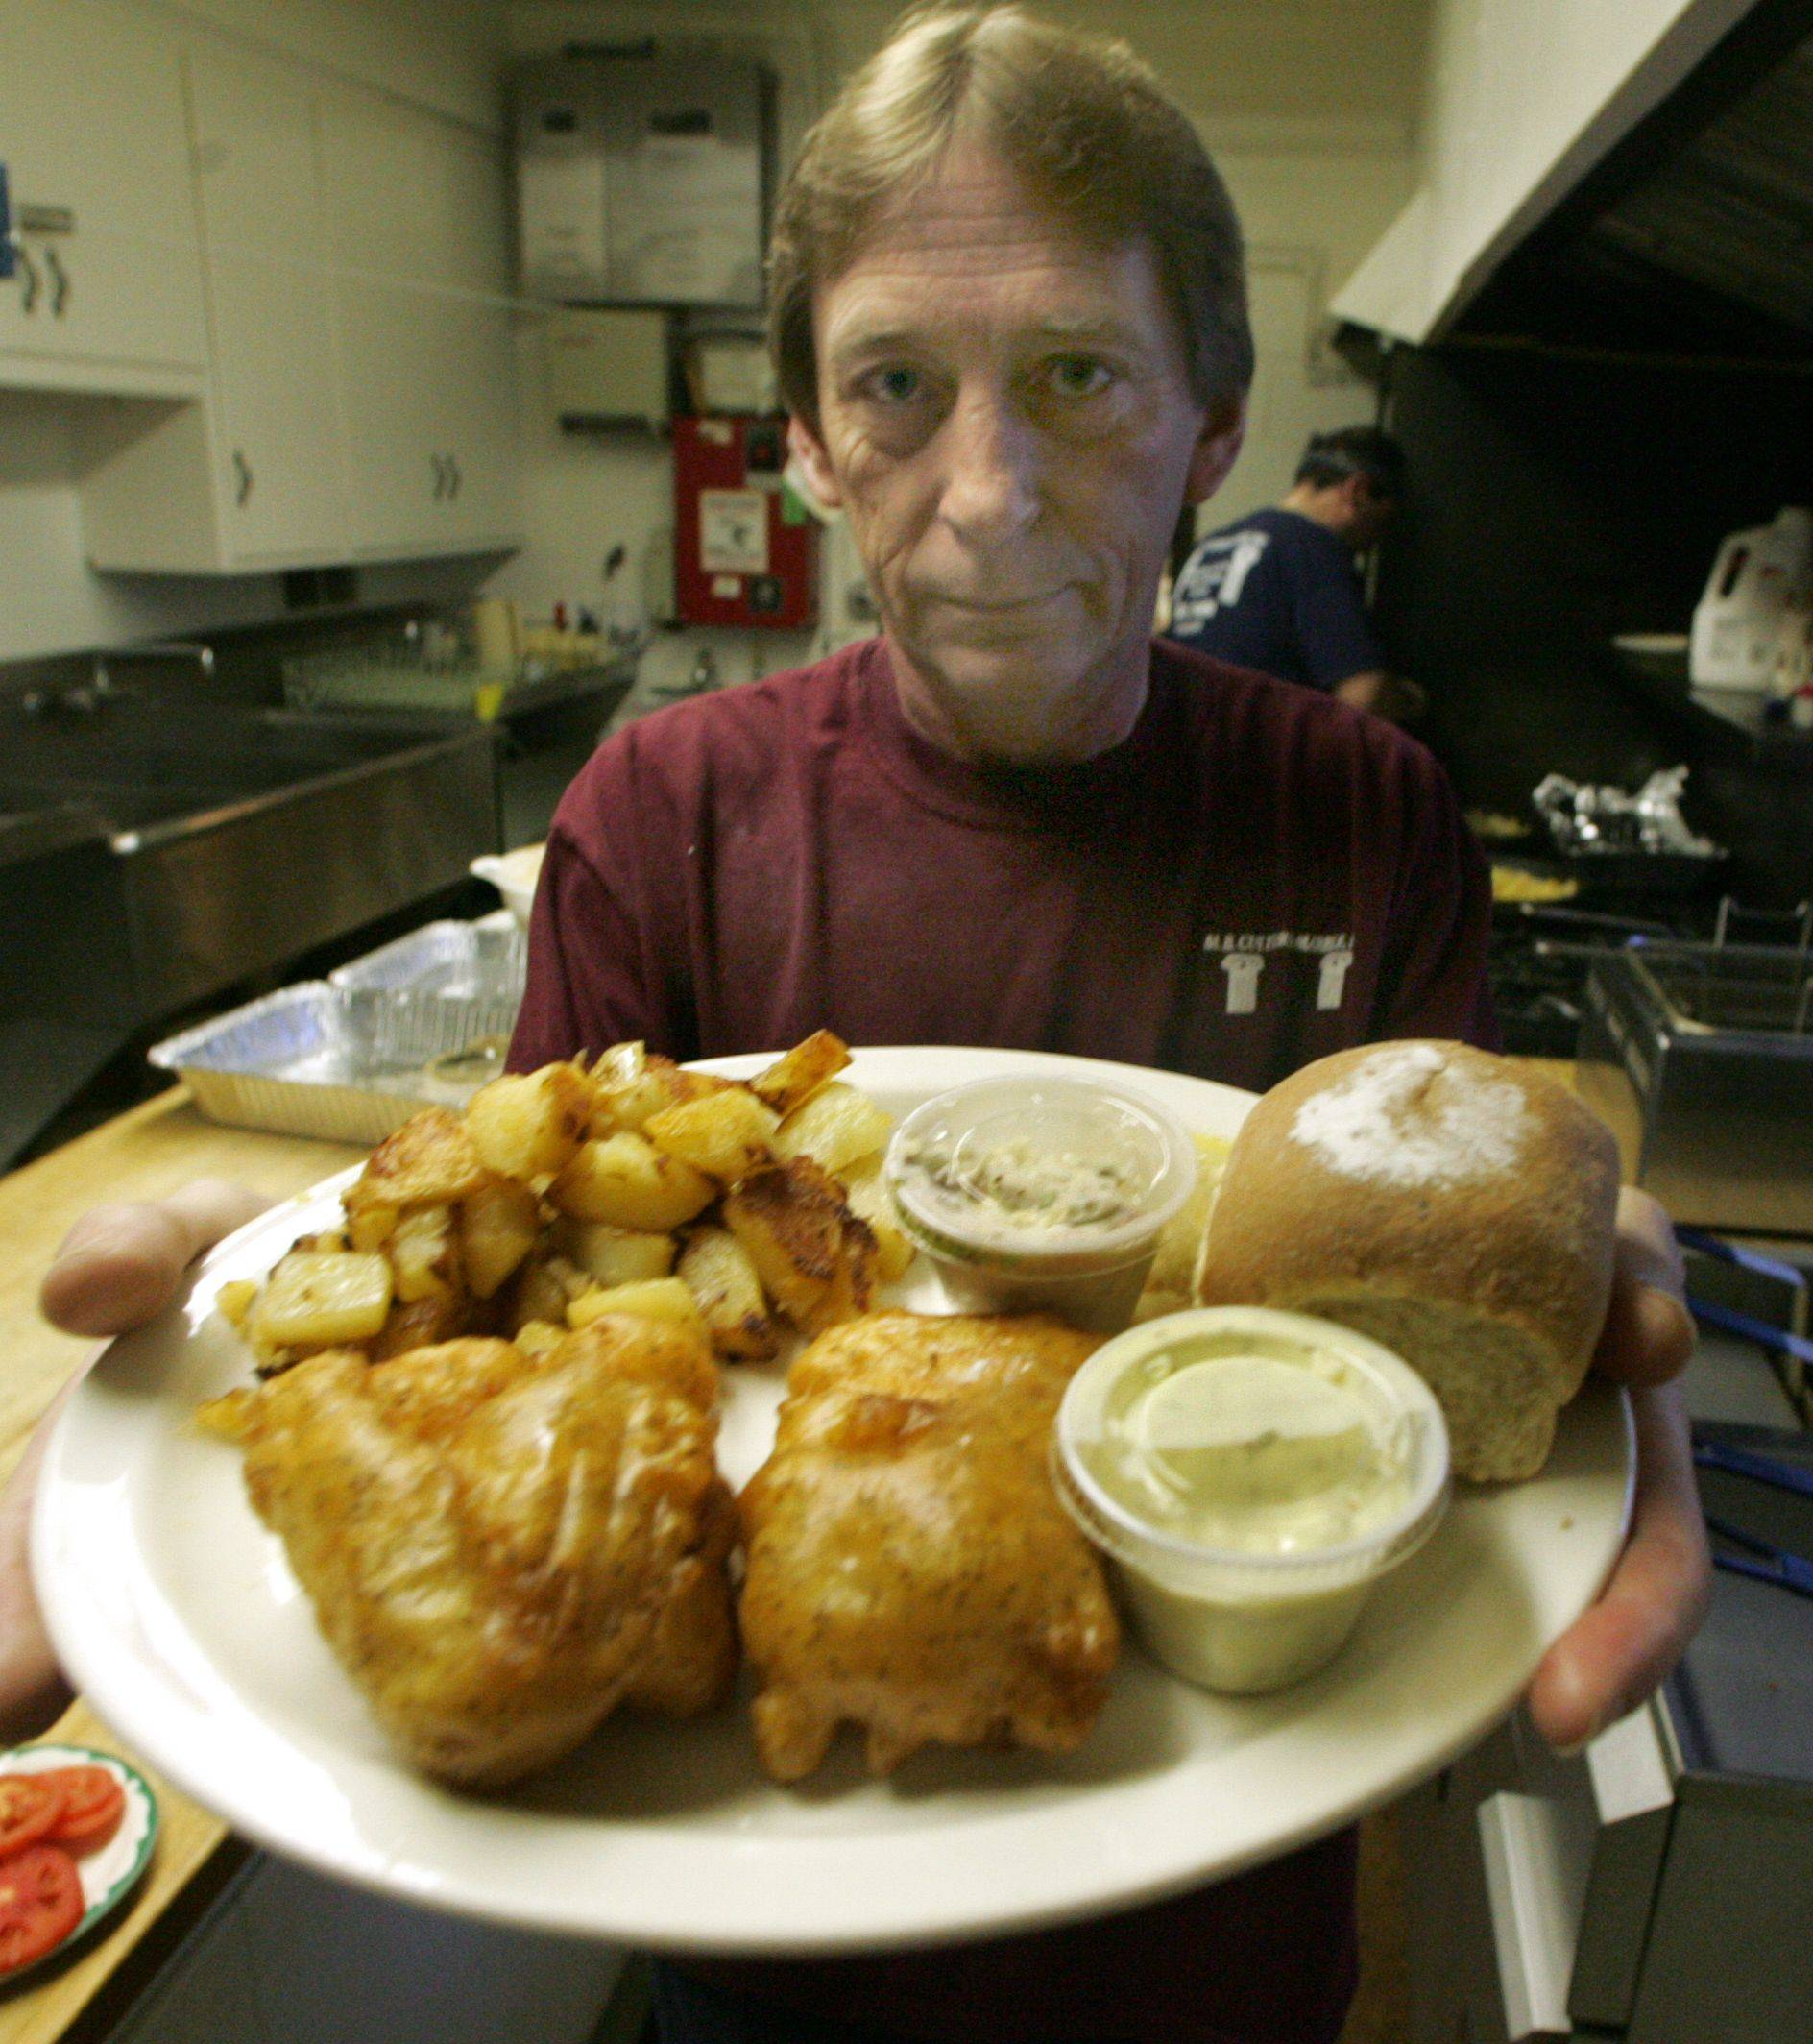 Robbie Robinson shows off a plate of beer-battered Icelandic cod that includes American fries, coleslaw and a roll at VFW Post 2298 in West Dundee.